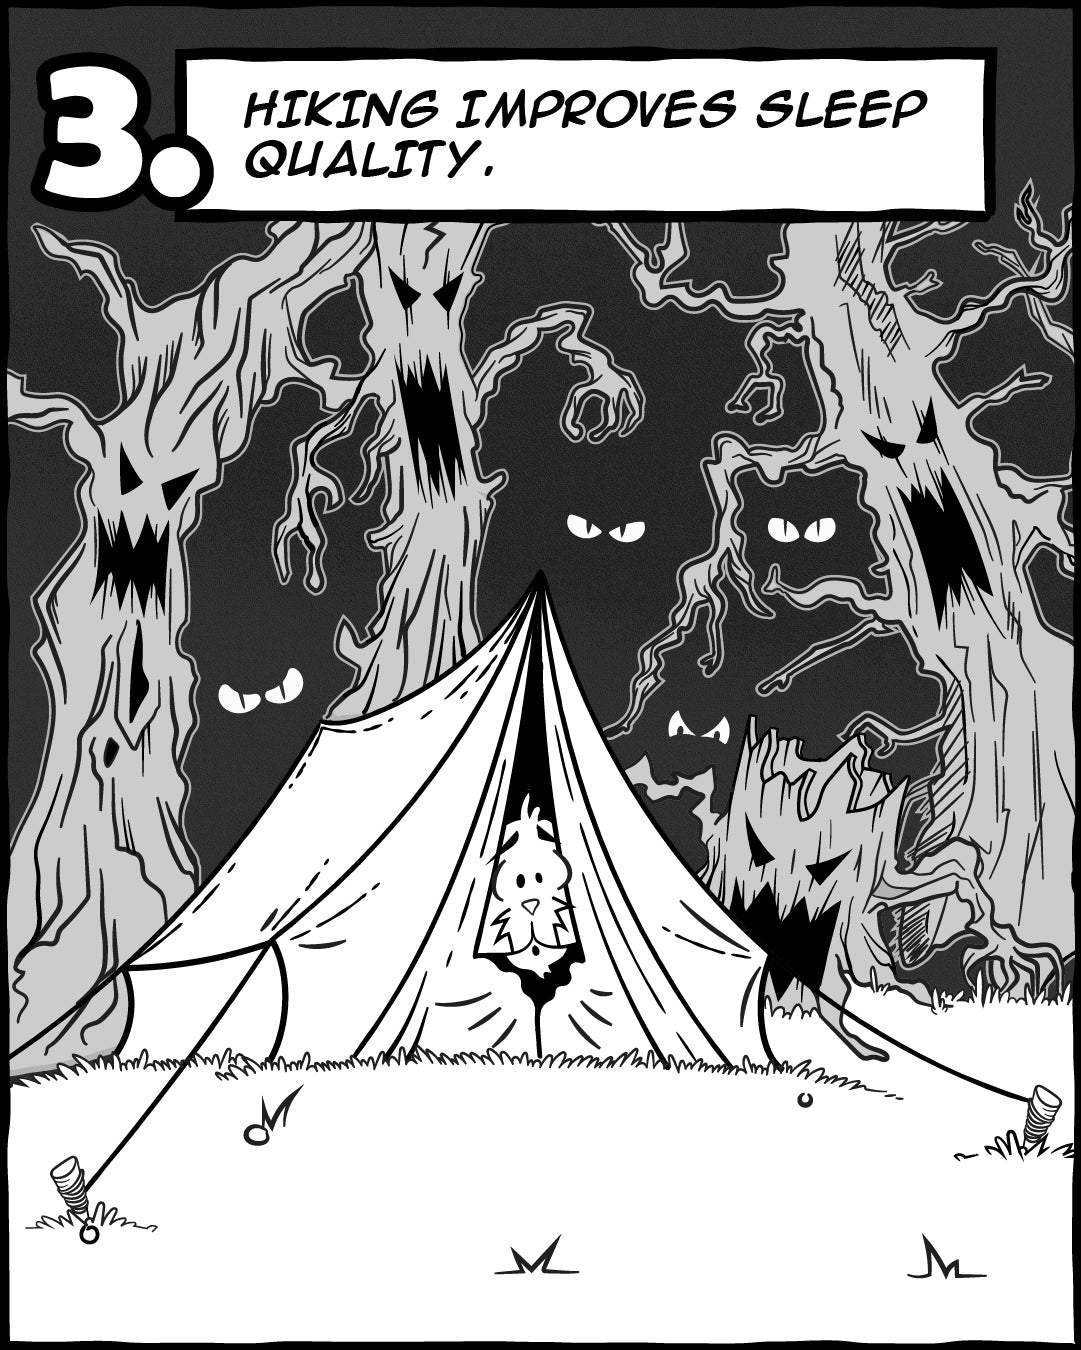 Hiking Improves Sleep Quality - 5 Reasons Hiking Is Good For Your Soul, The Adventures Of Lambert Comic Series   TRVRS Outdoors